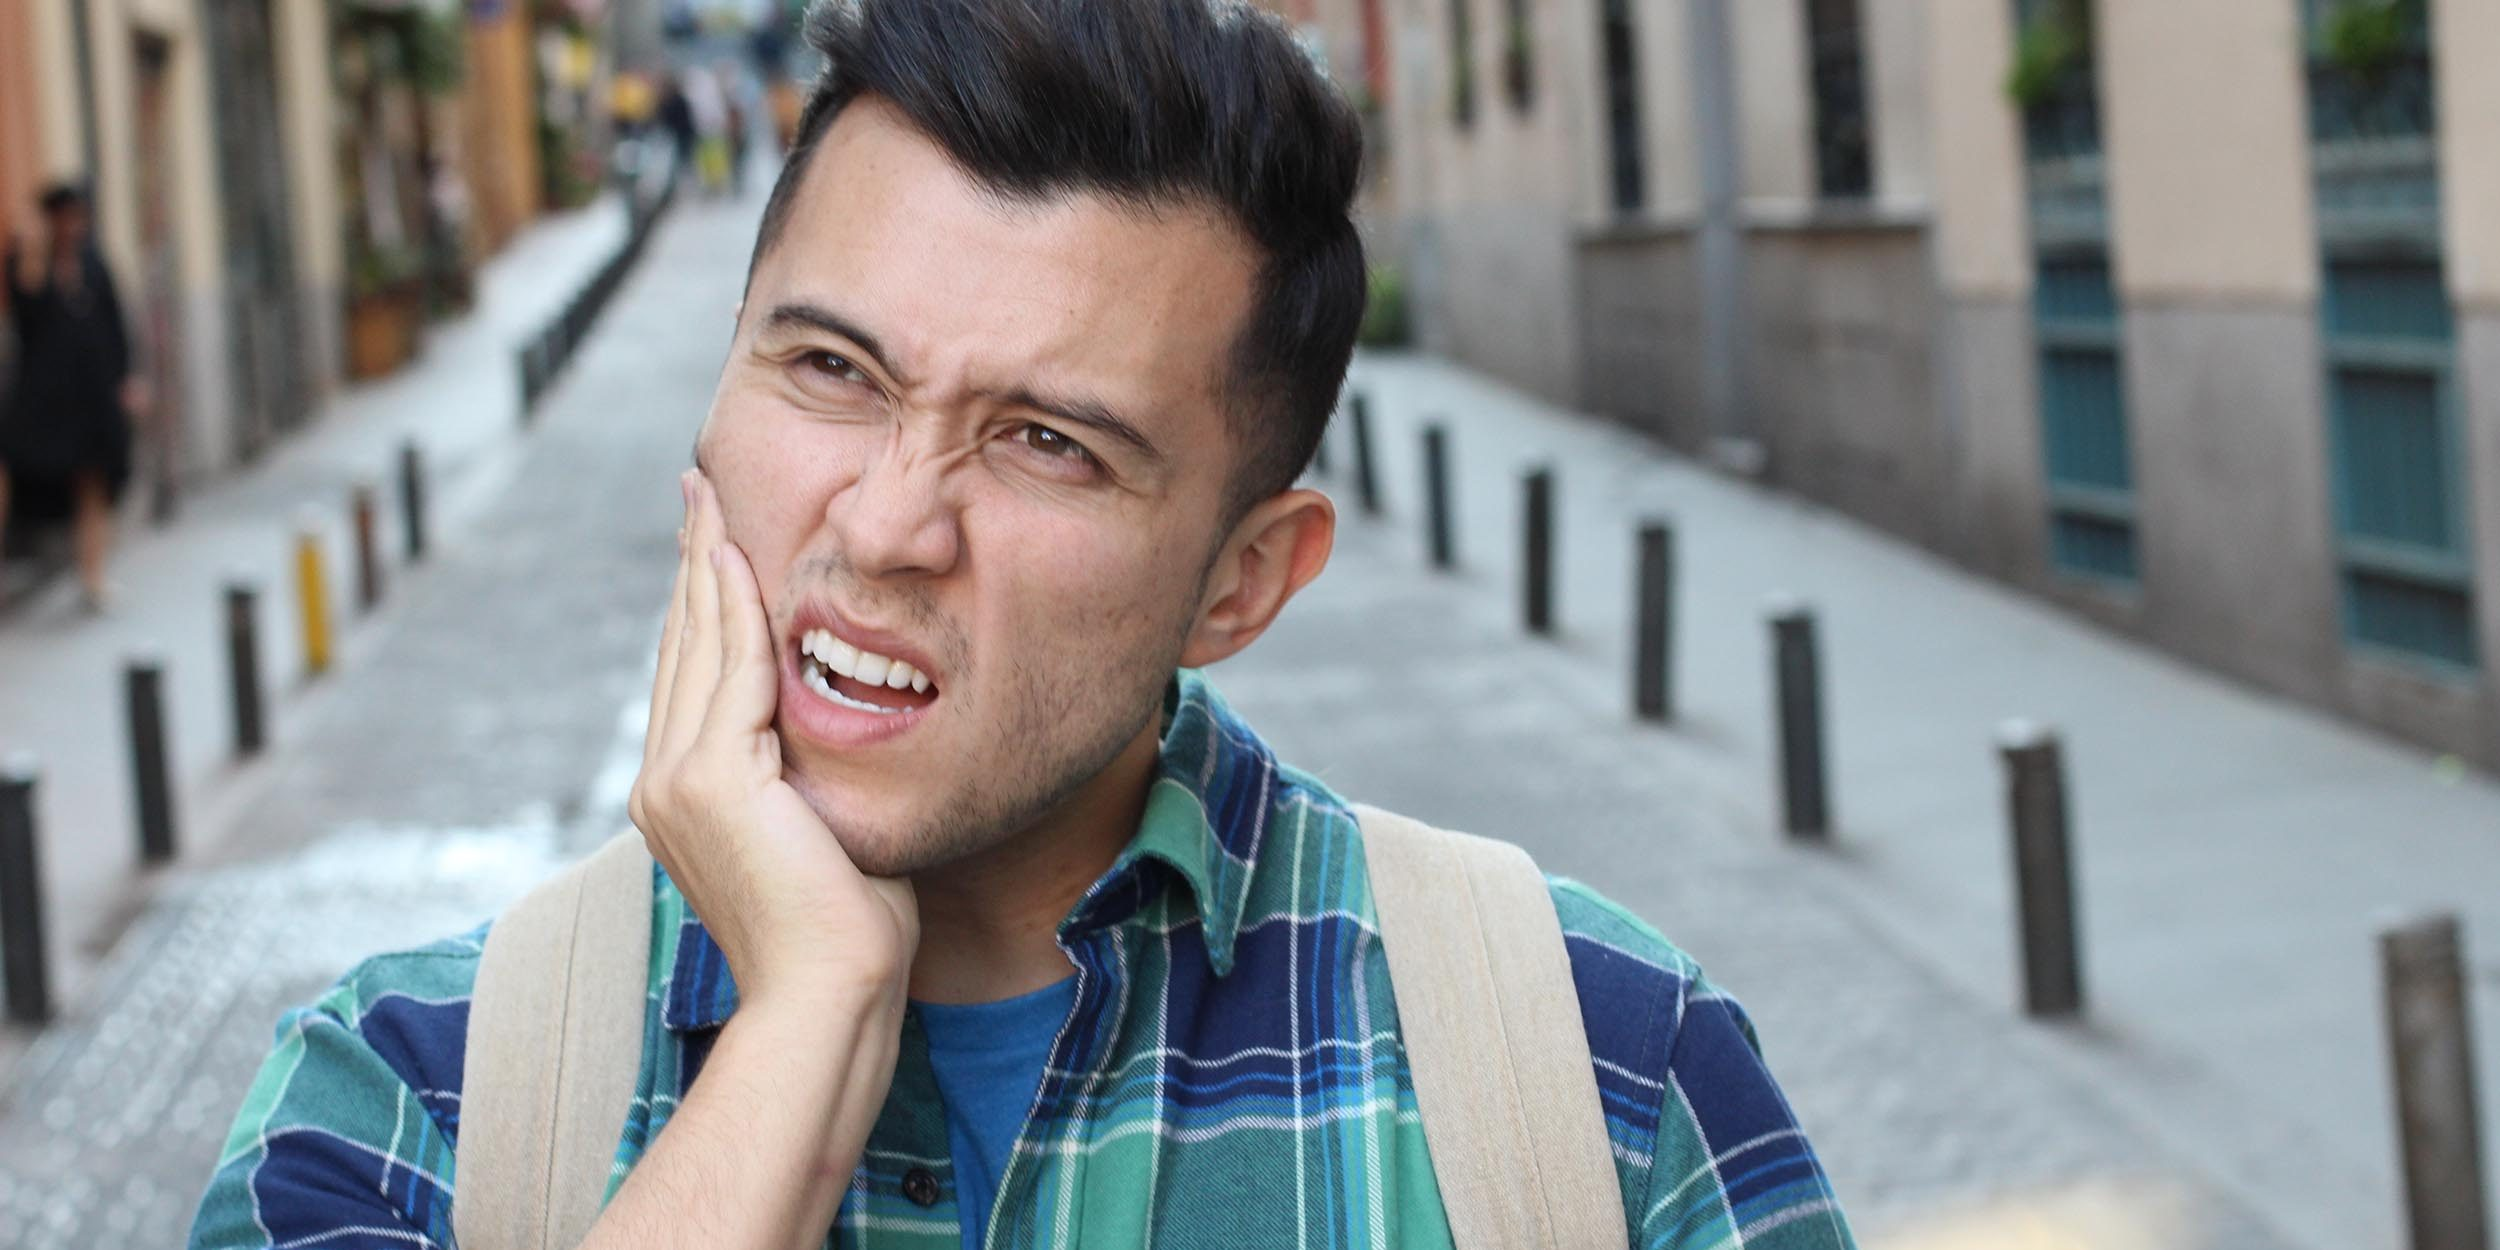 Unhappy man suffering from bruxism